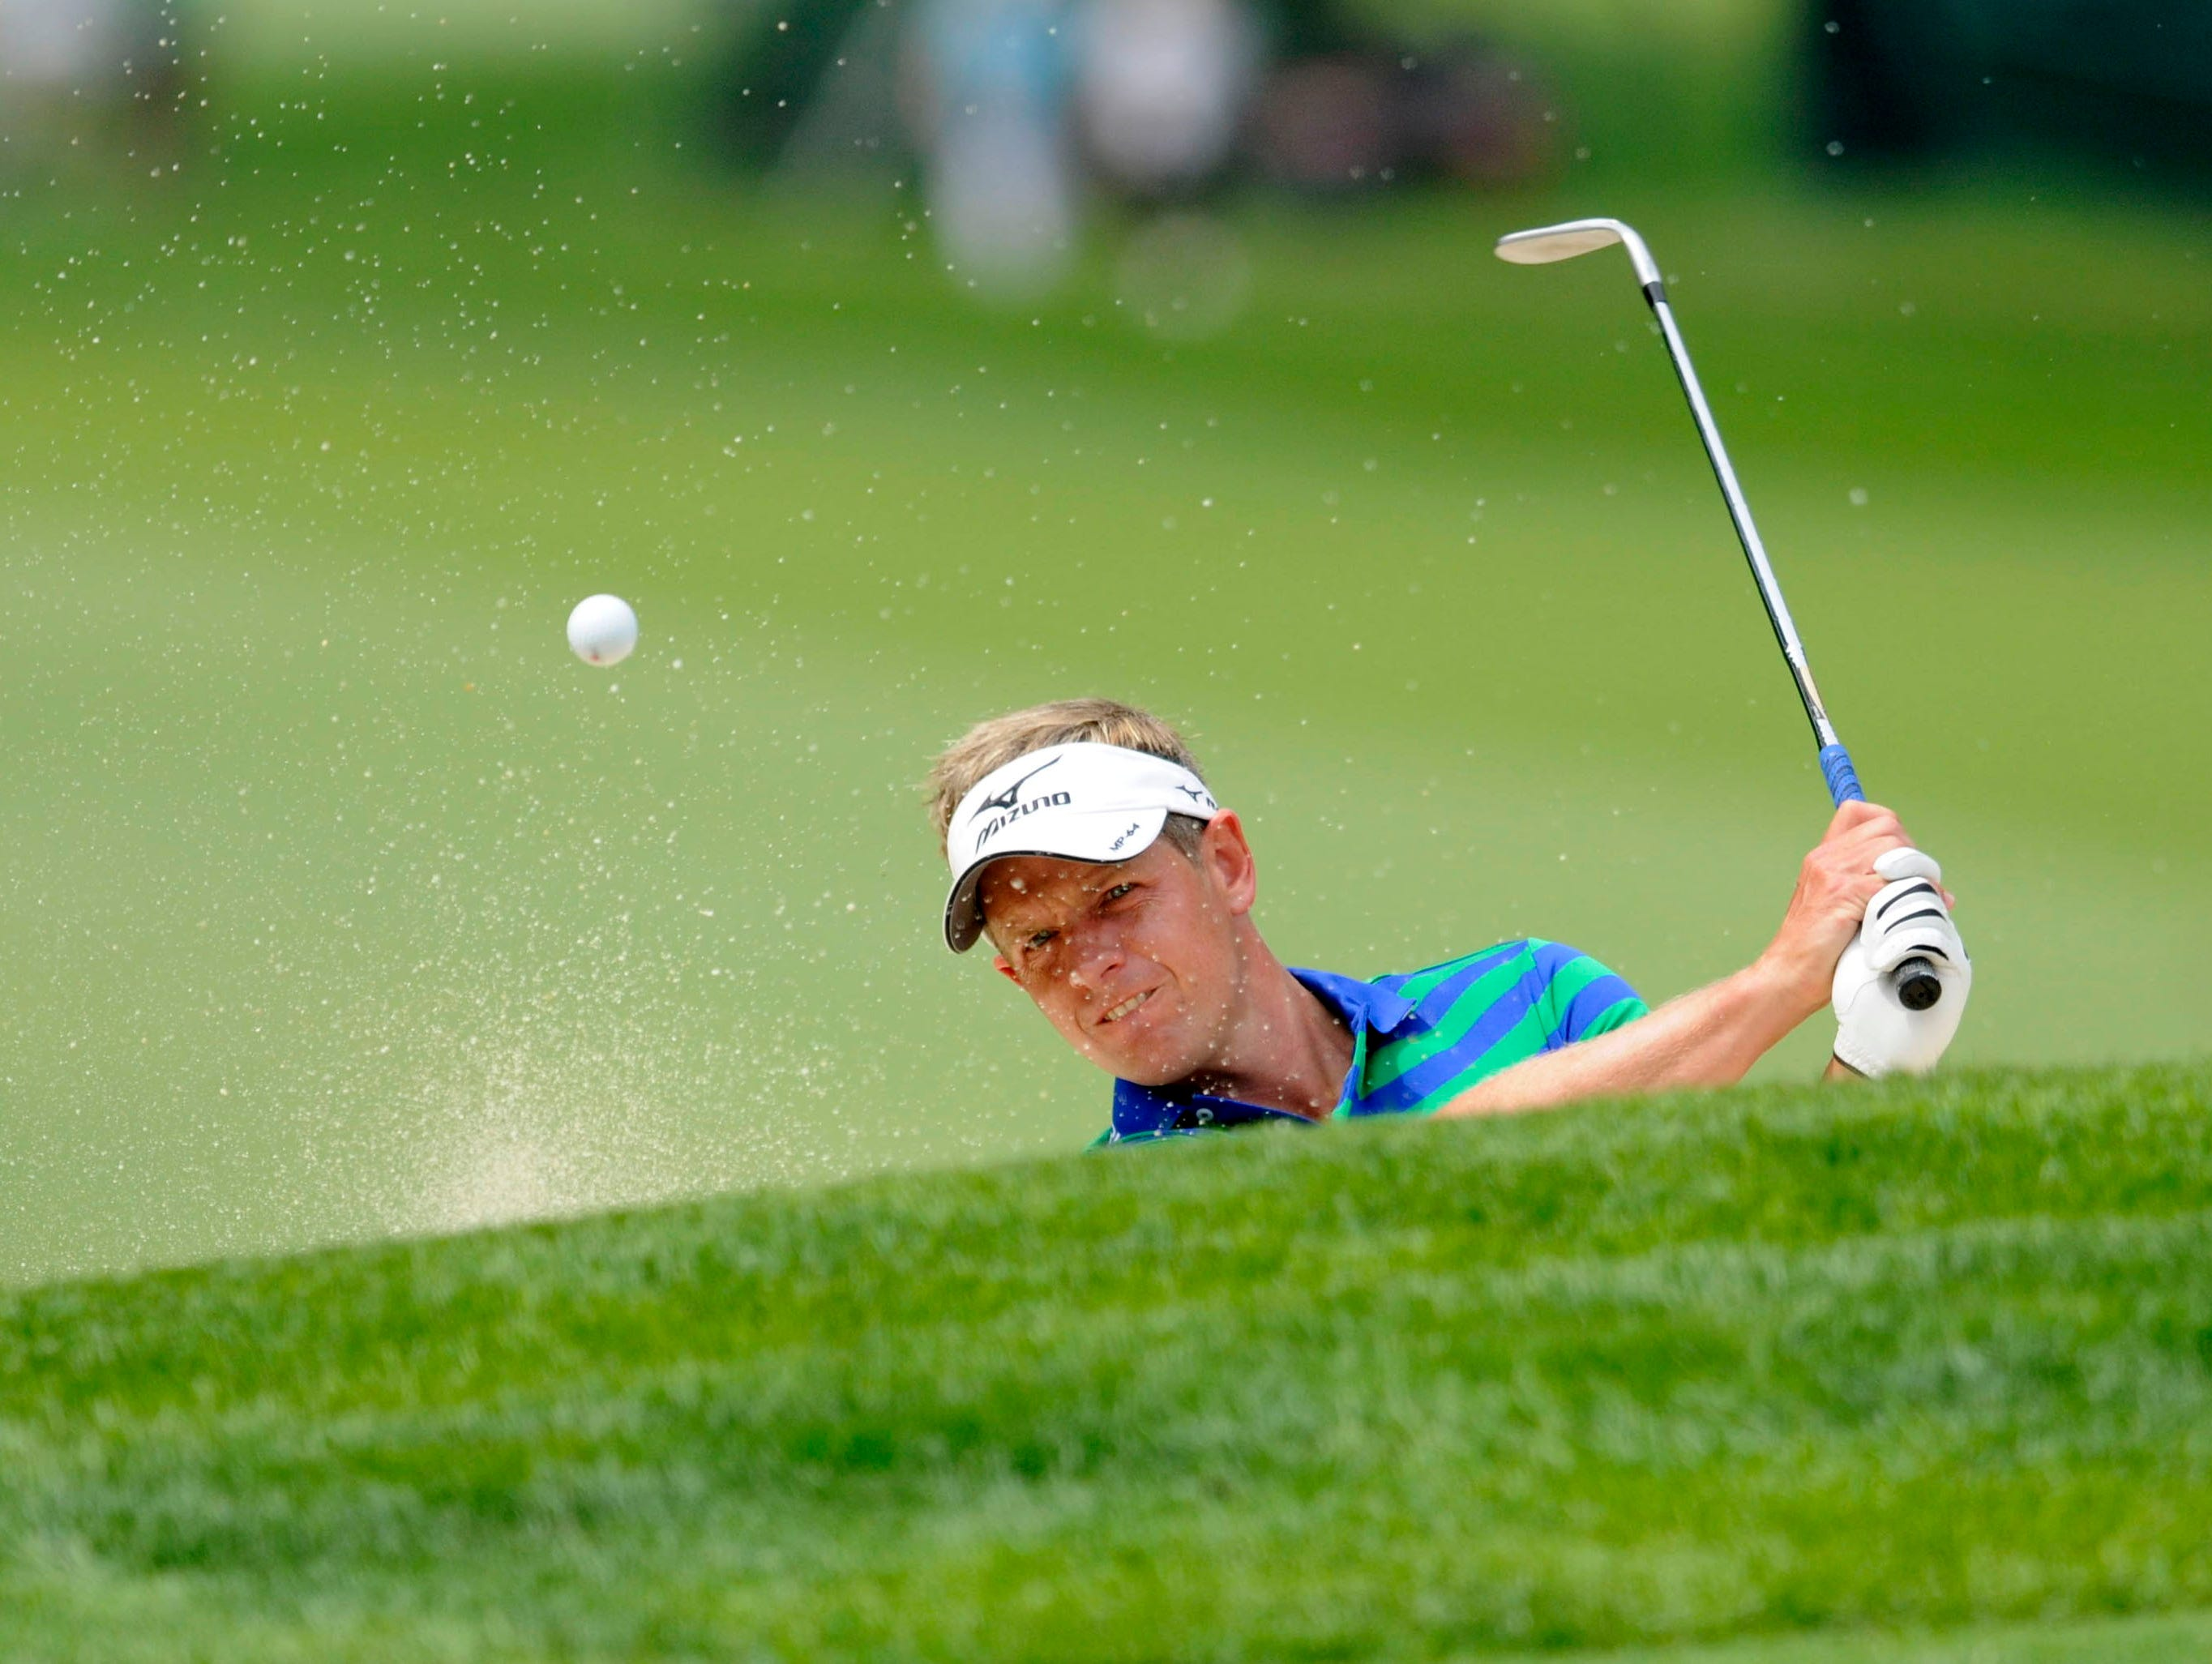 Luke Donald  plays from a bunker on the 2nd green during the practice round of the 95th PGA Championship at Oak Hill Country Club.